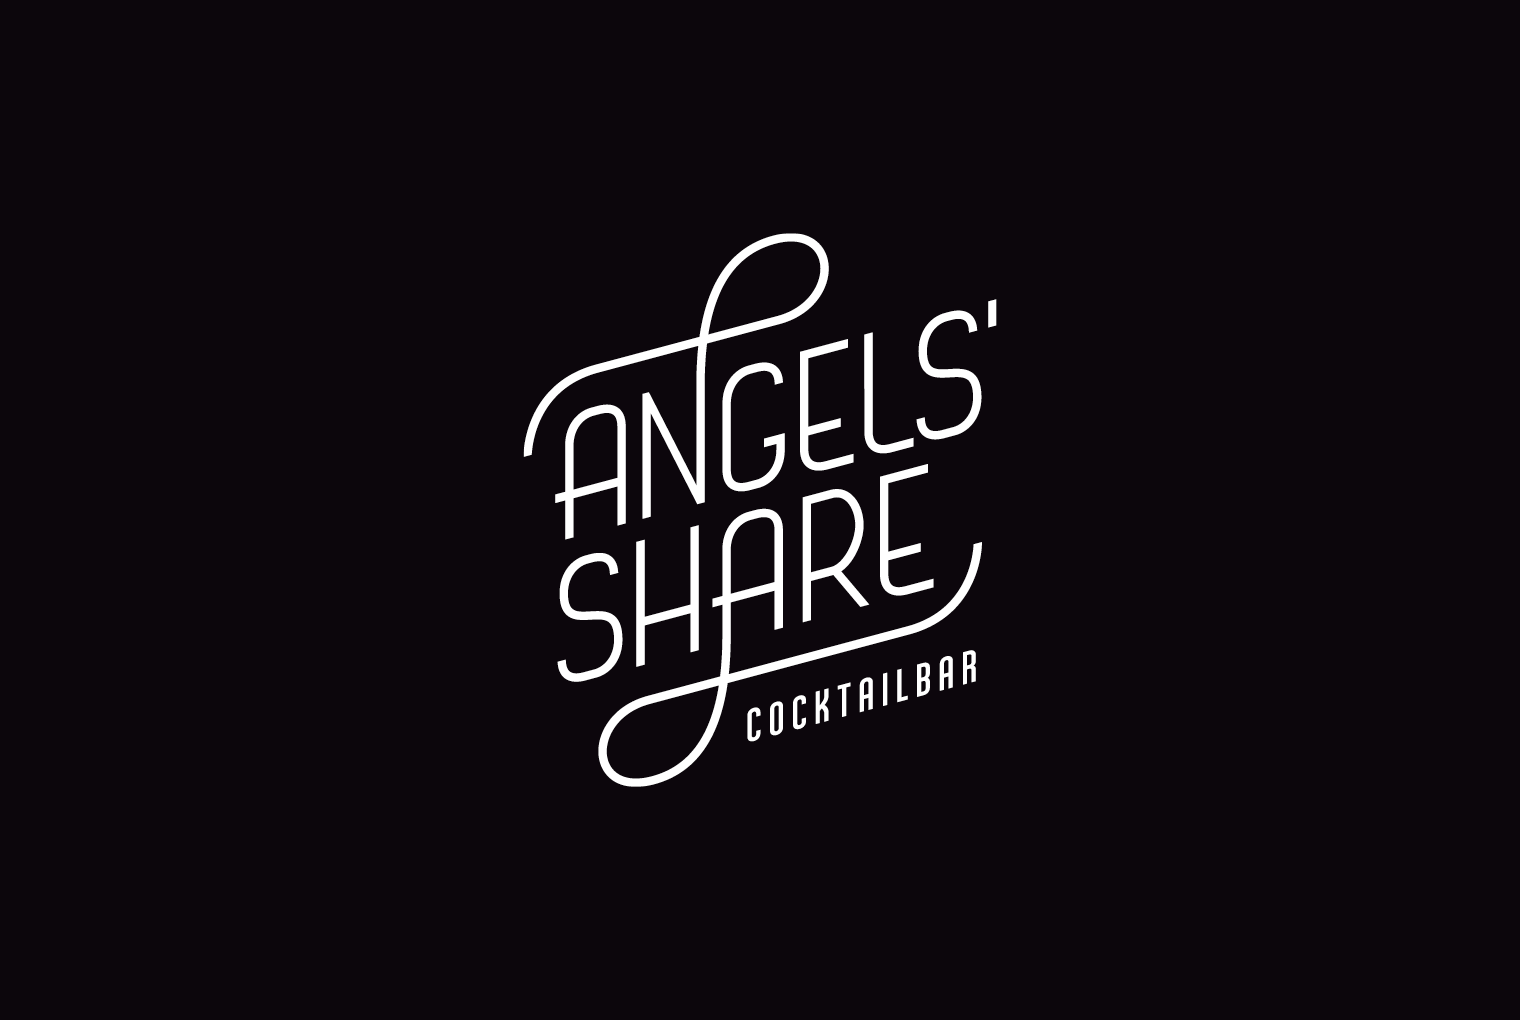 angels_share_cocktailbar_logo